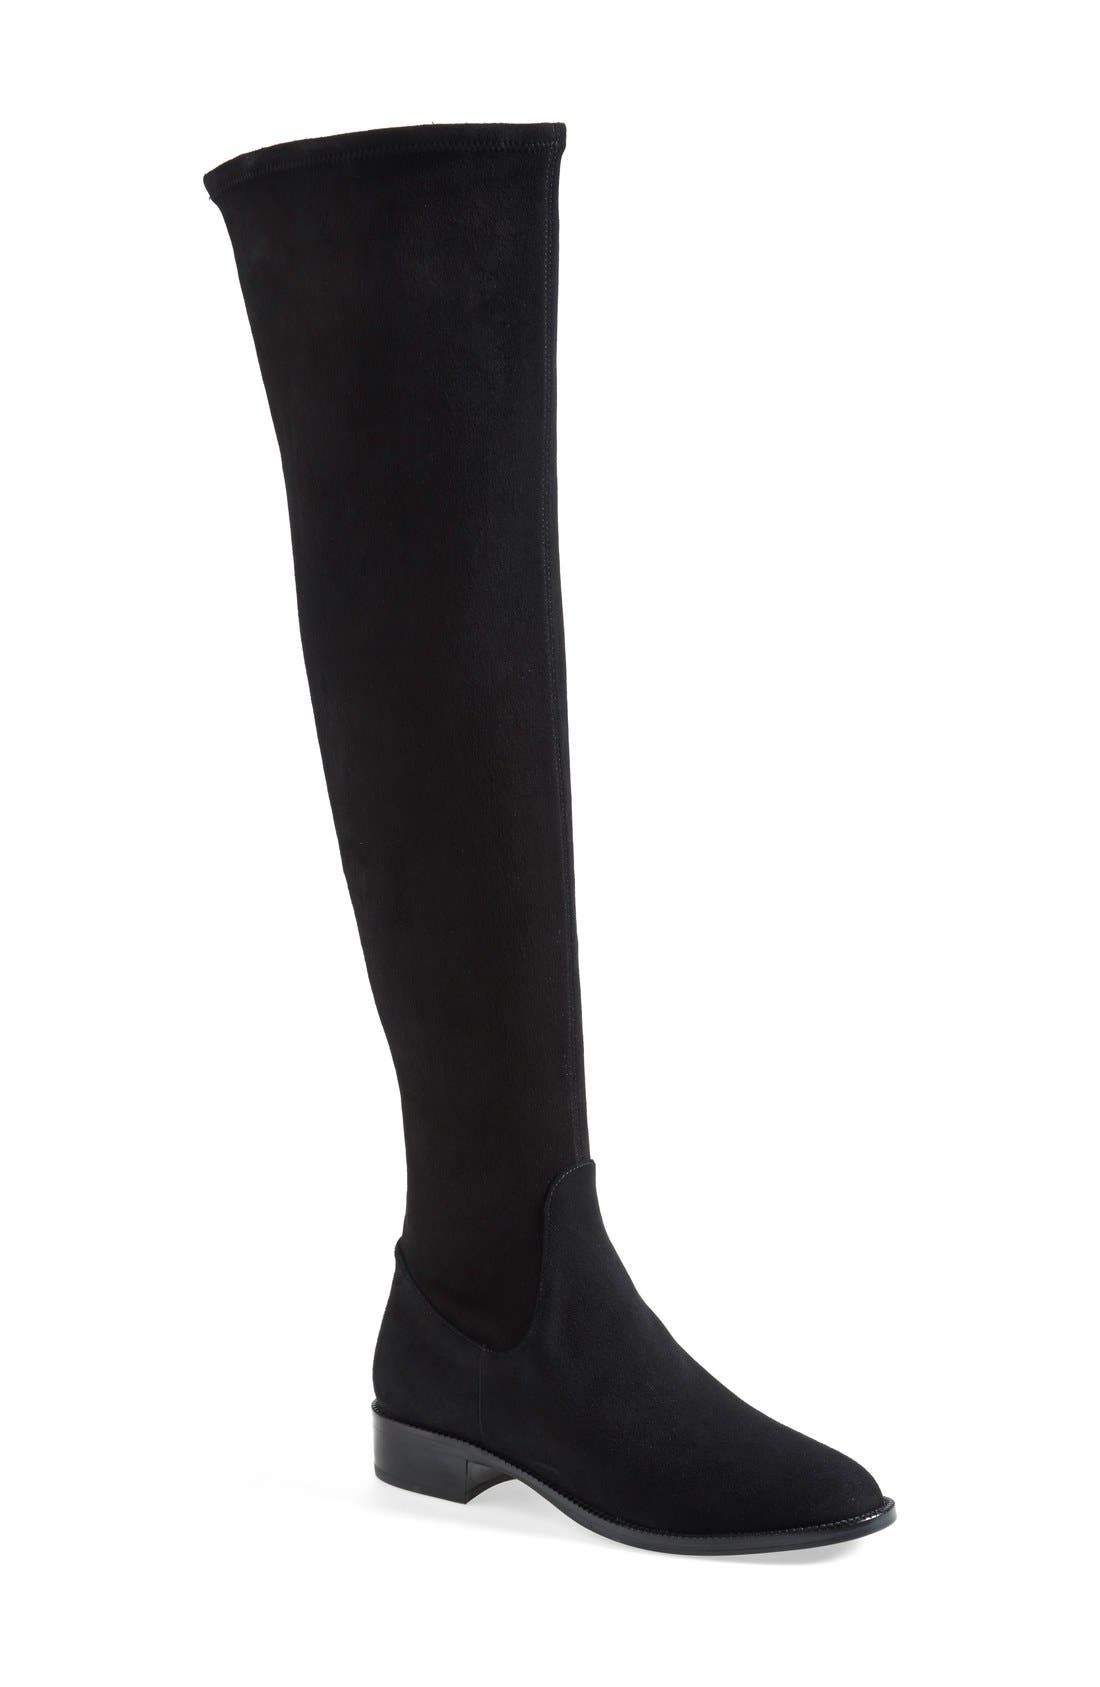 Main Image - Via Spiga 'Boni' Over the Knee Boot (Women)